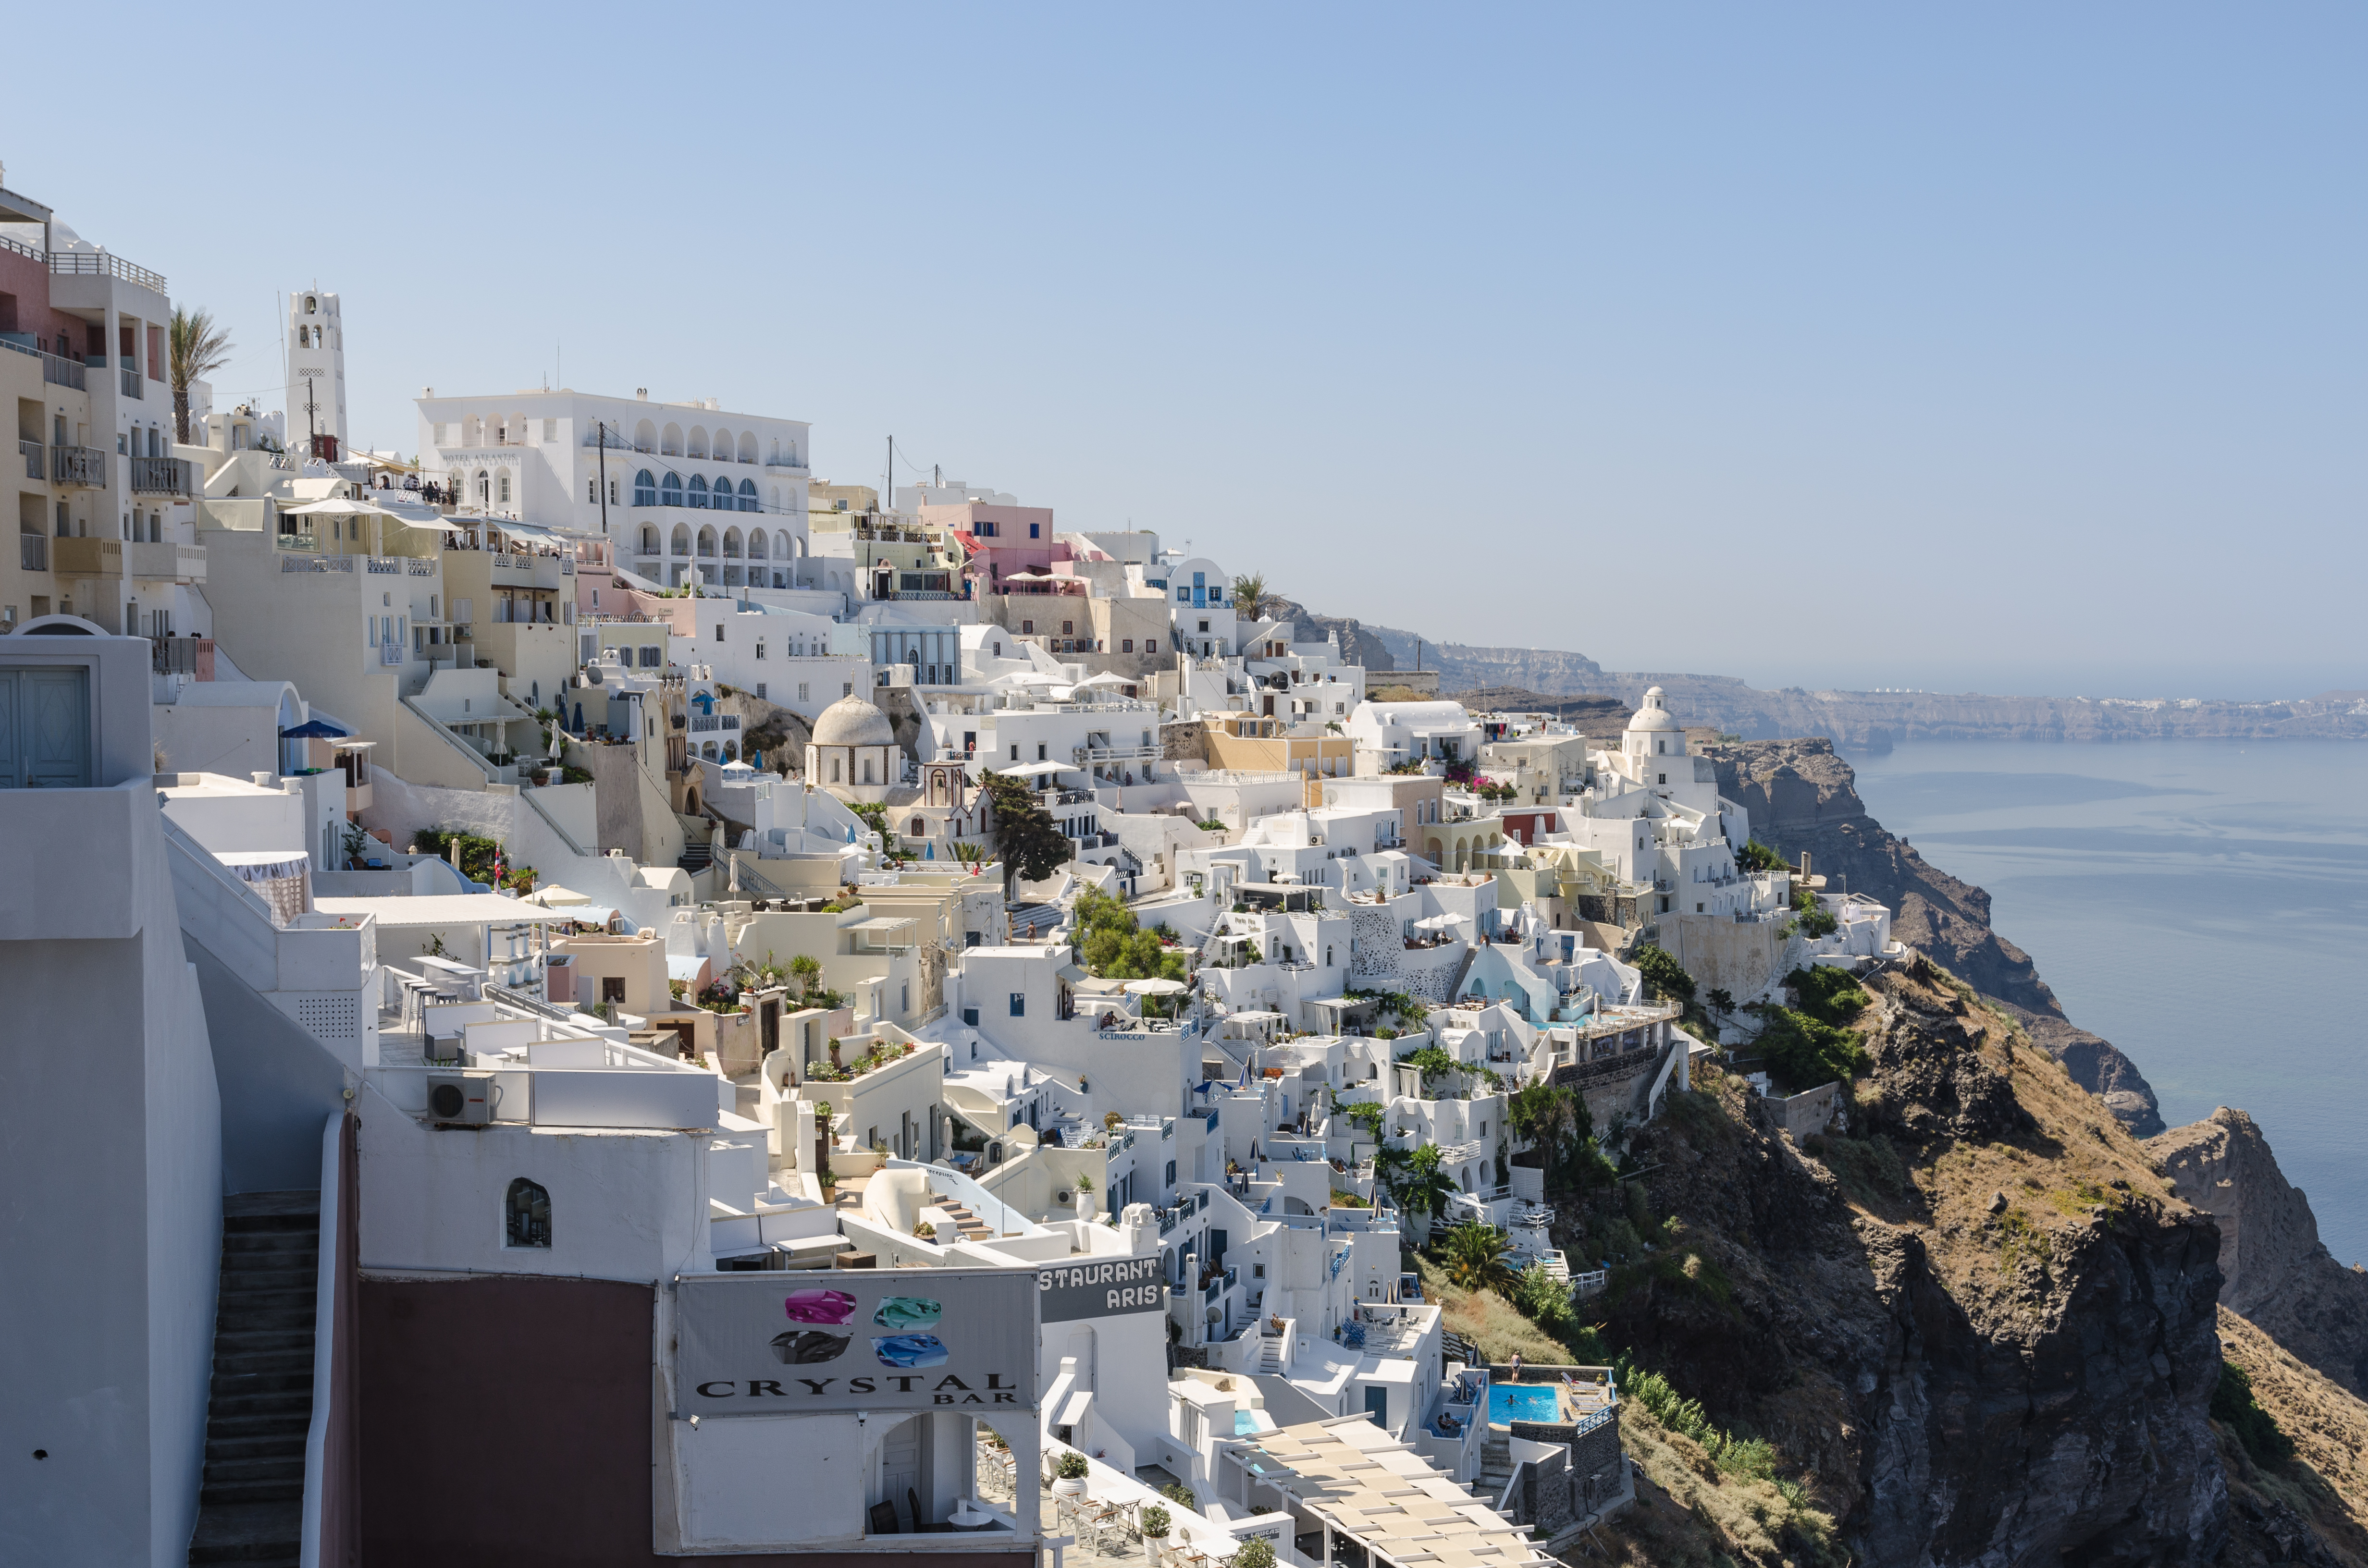 File:Crater rim alley - Fira - Santorini - Greece - 08.jpg